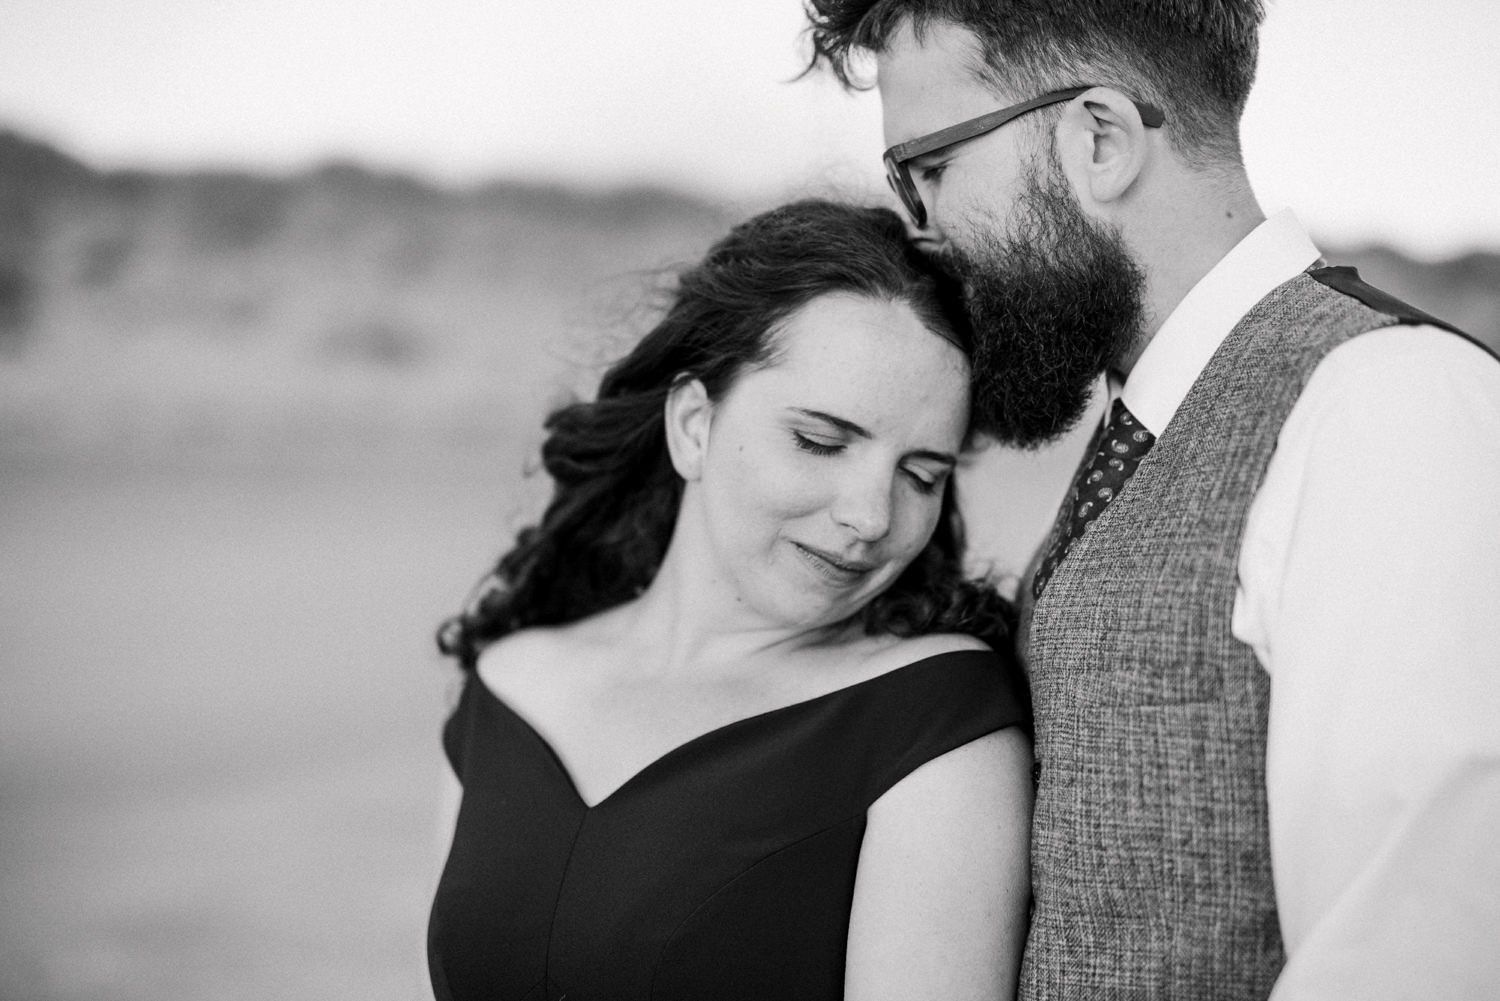 sarah-and-daniel-derryanne-engagement-photography-kerry-wedding-photographer-ireland-40